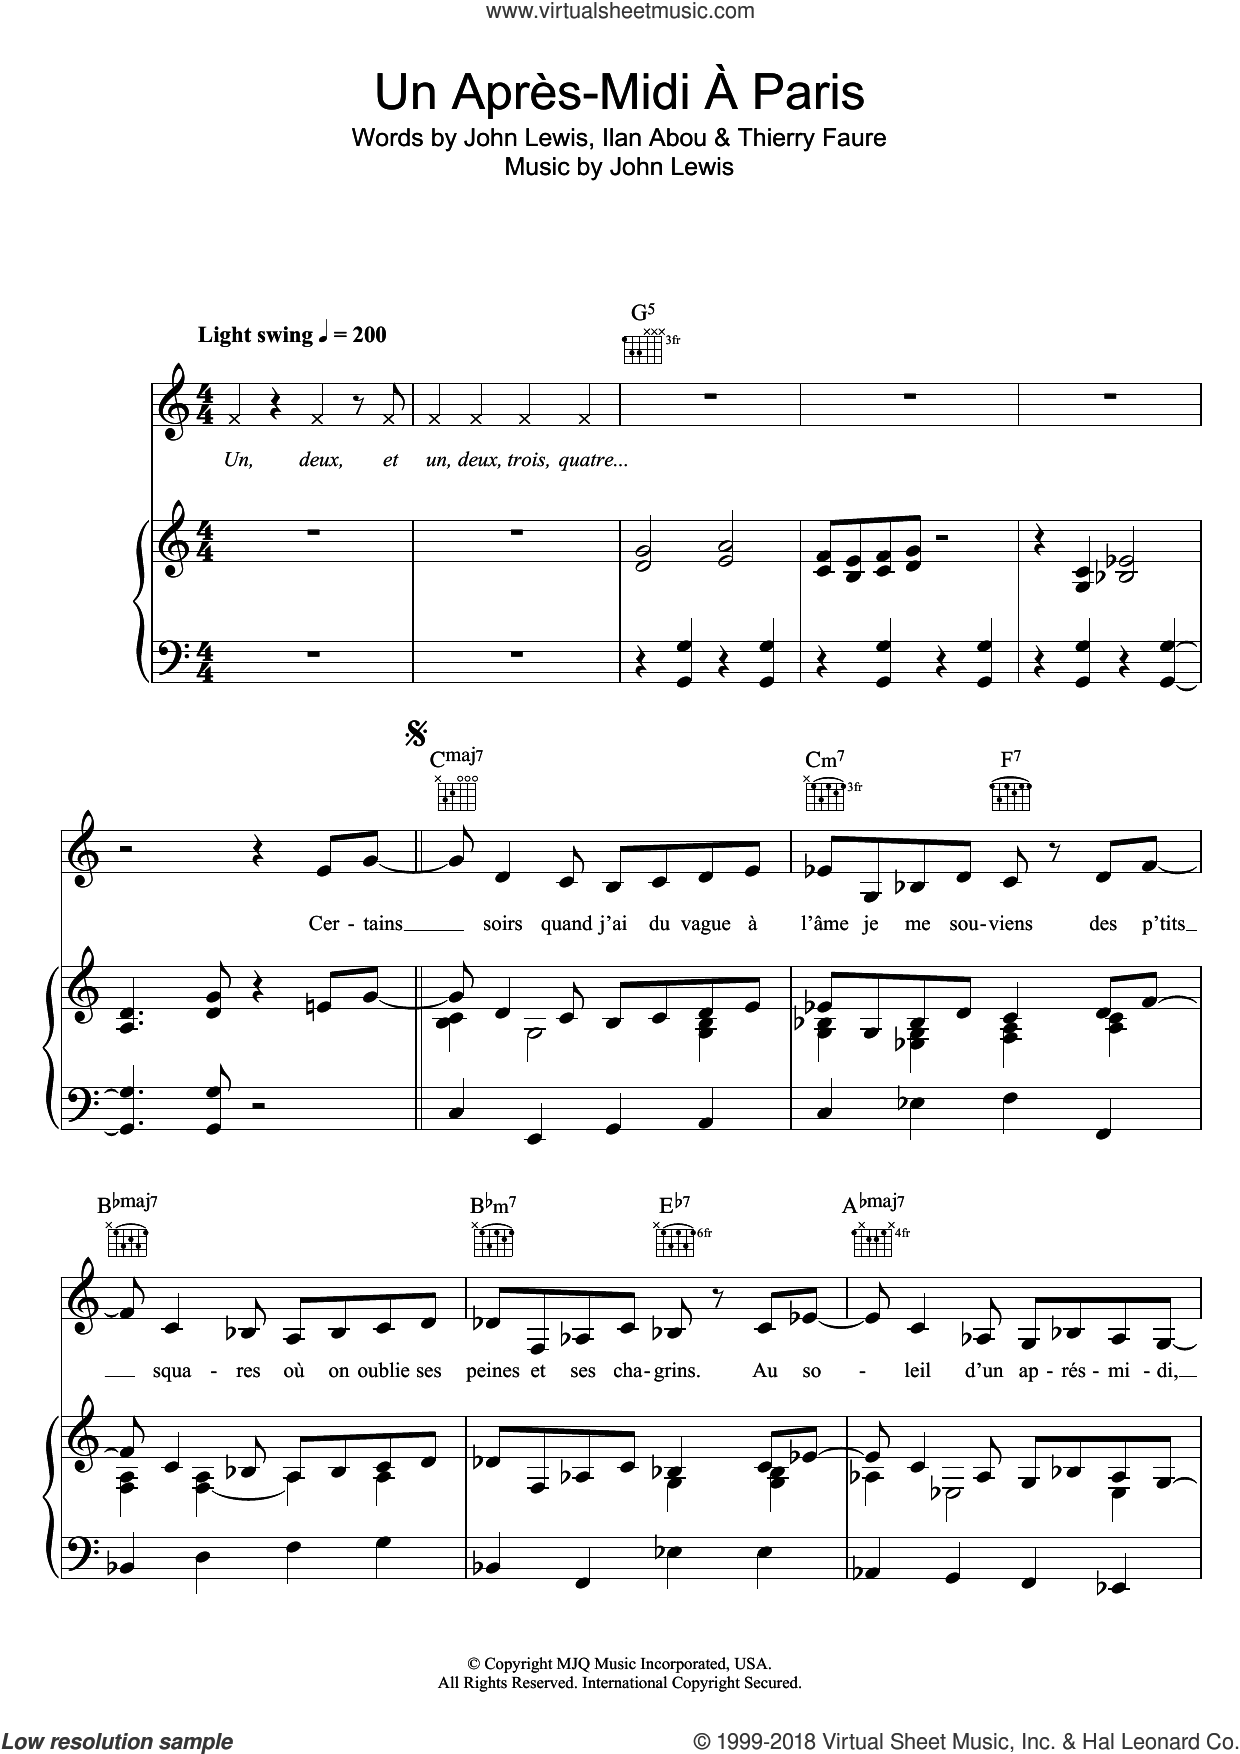 Paris, L'apres-Midi sheet music for voice, piano or guitar by Zaz, Ilan Abou, John Lewis and Thierry Faure, intermediate skill level